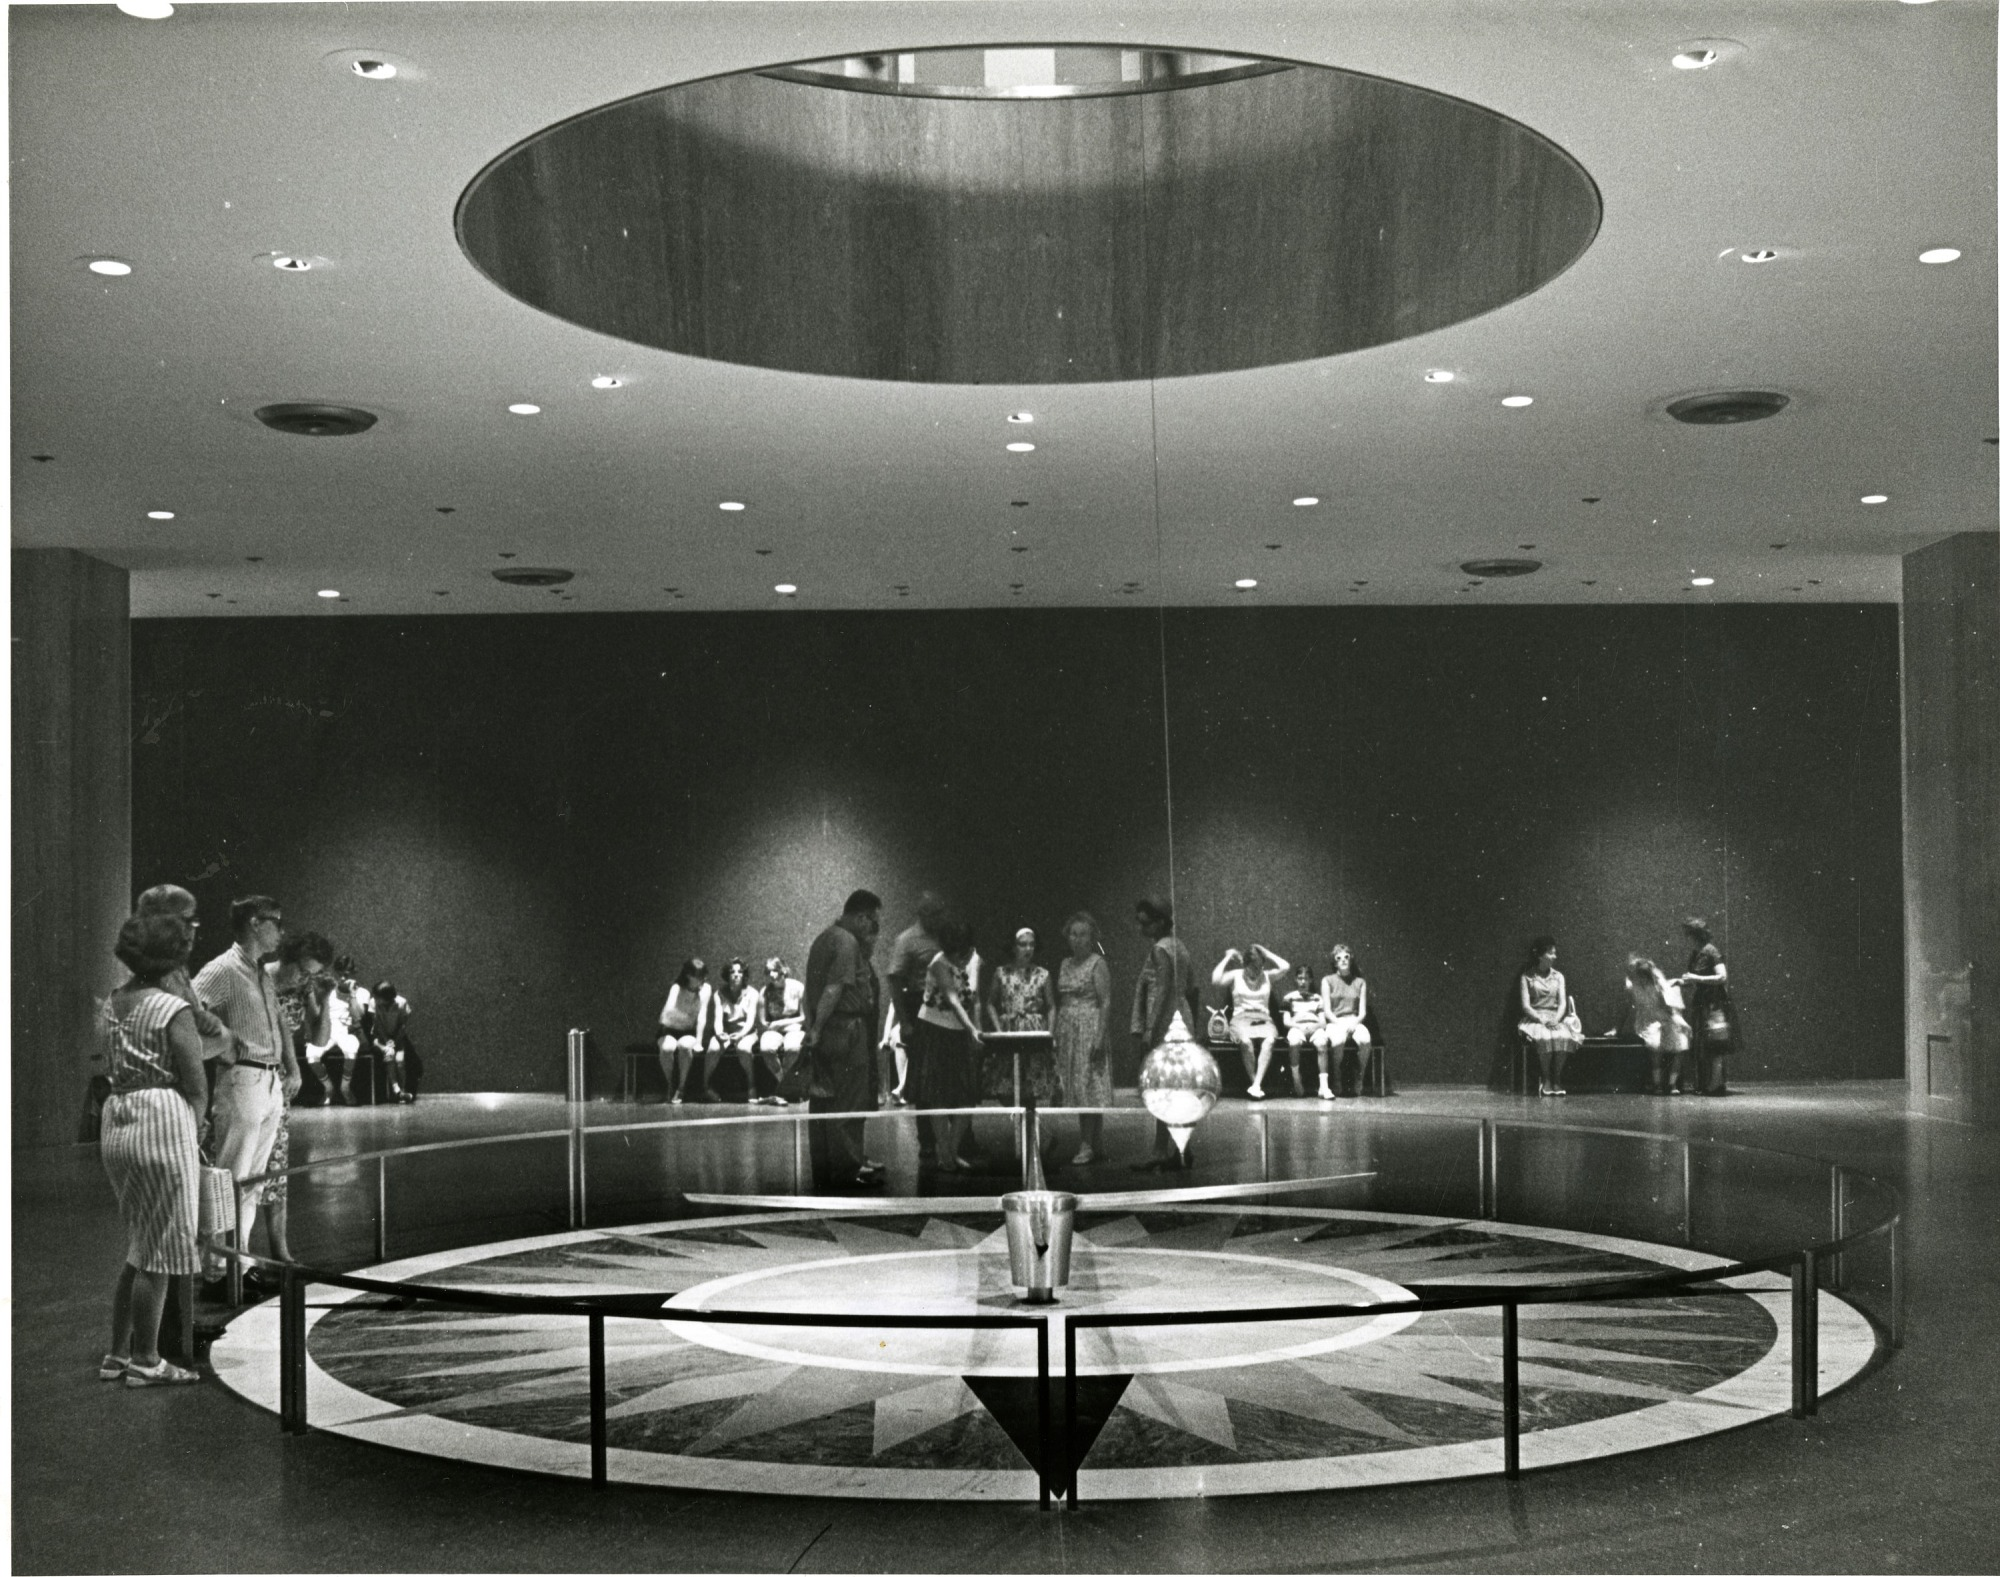 Pendulum Hall in NMHT, by Unknown, Smithsonian Archives - History Div, SIA2010-2908 or P64131-F or P64131-f.10.